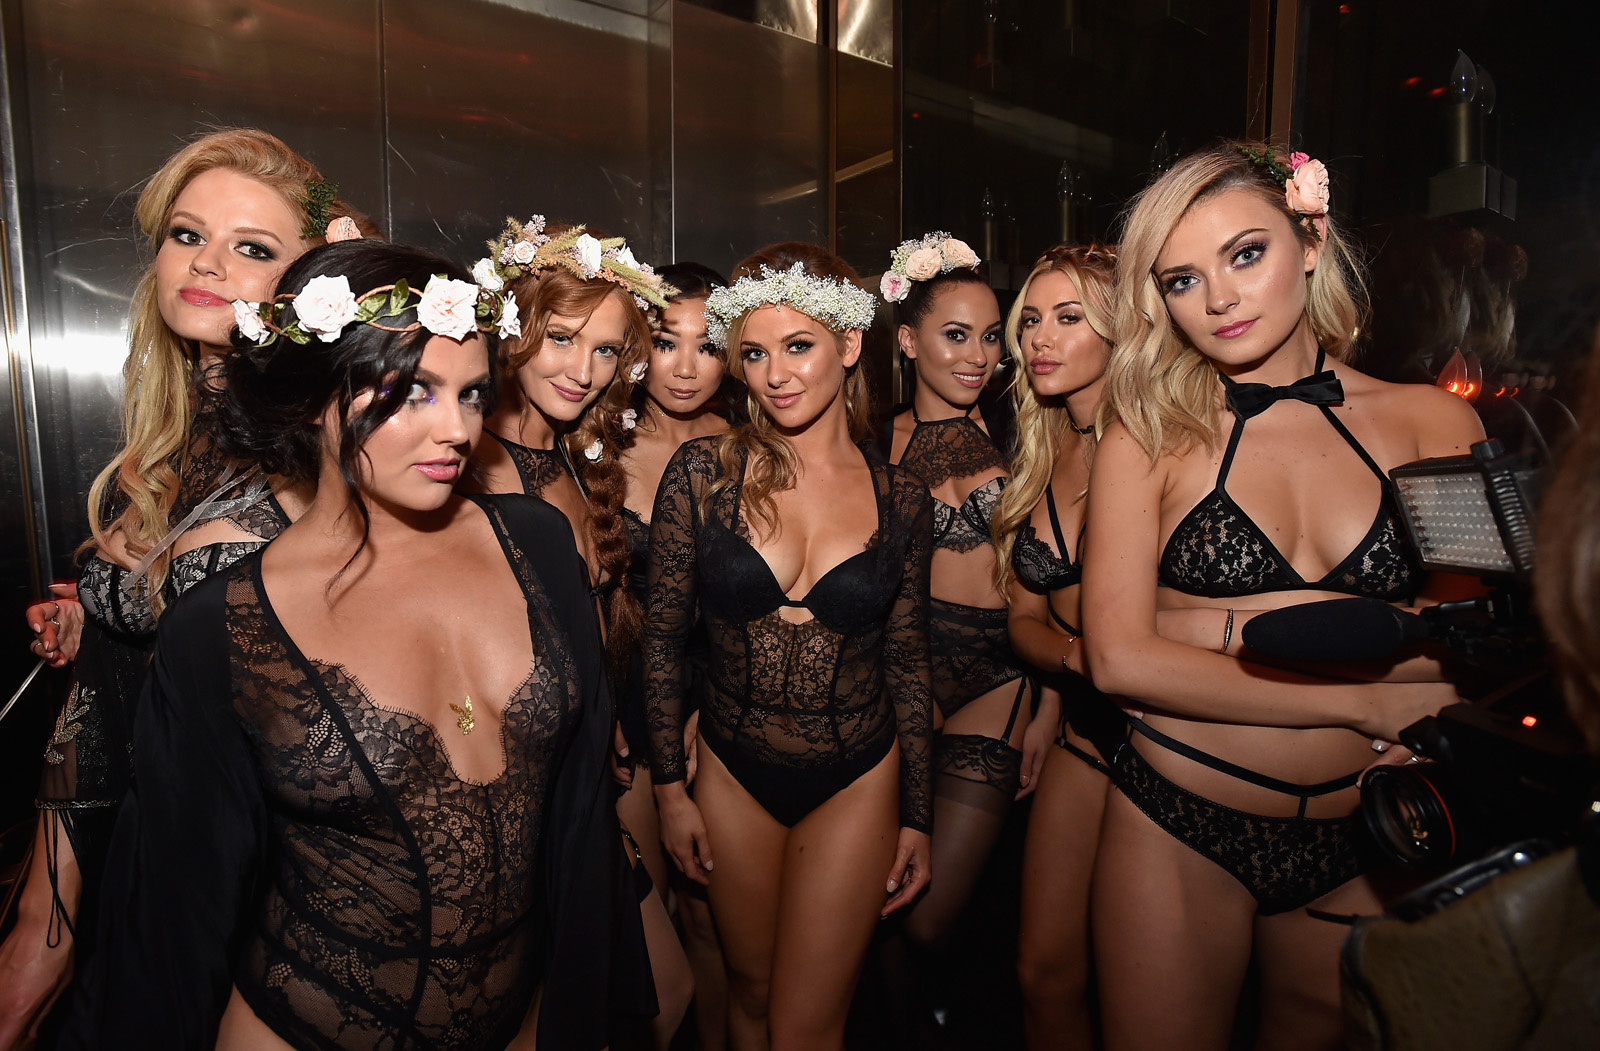 Playboy S Sexy Midsummer Night S Dream Party Lights Up Las